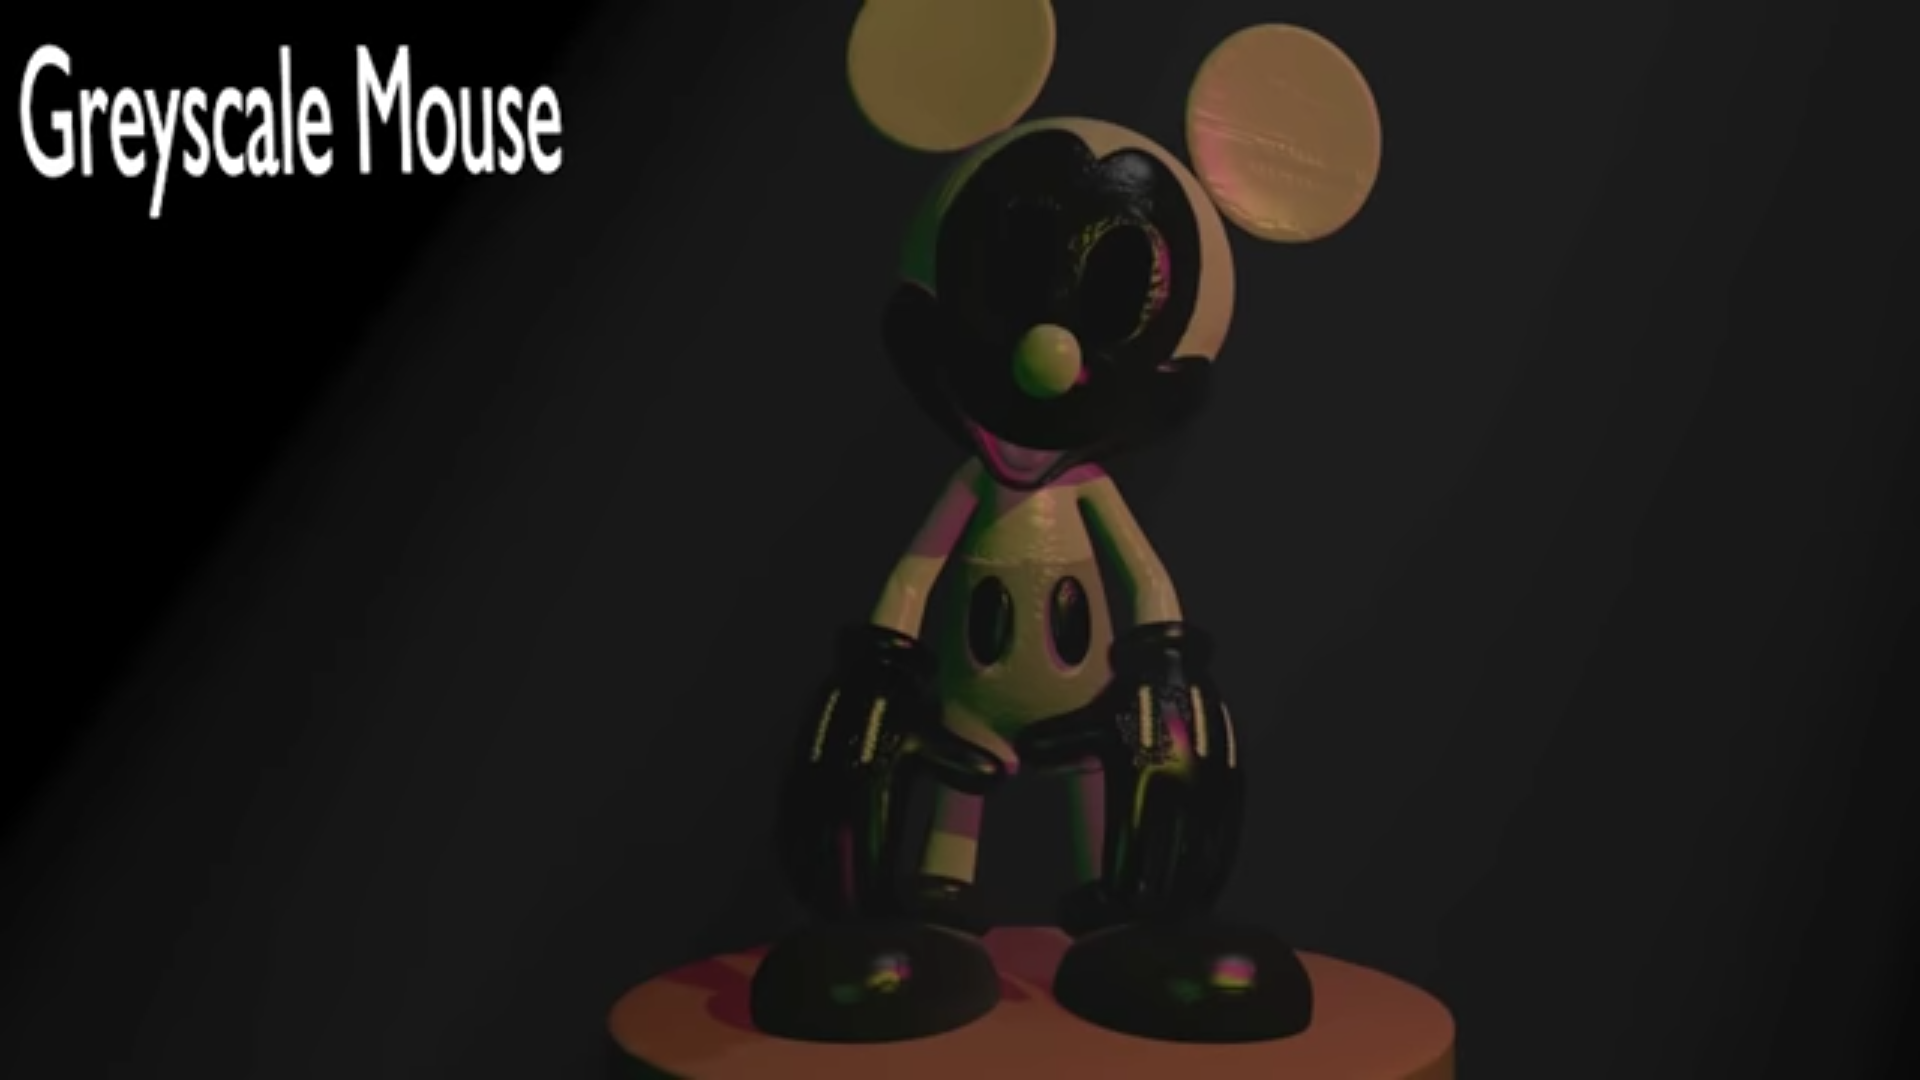 Greyscale Mouse